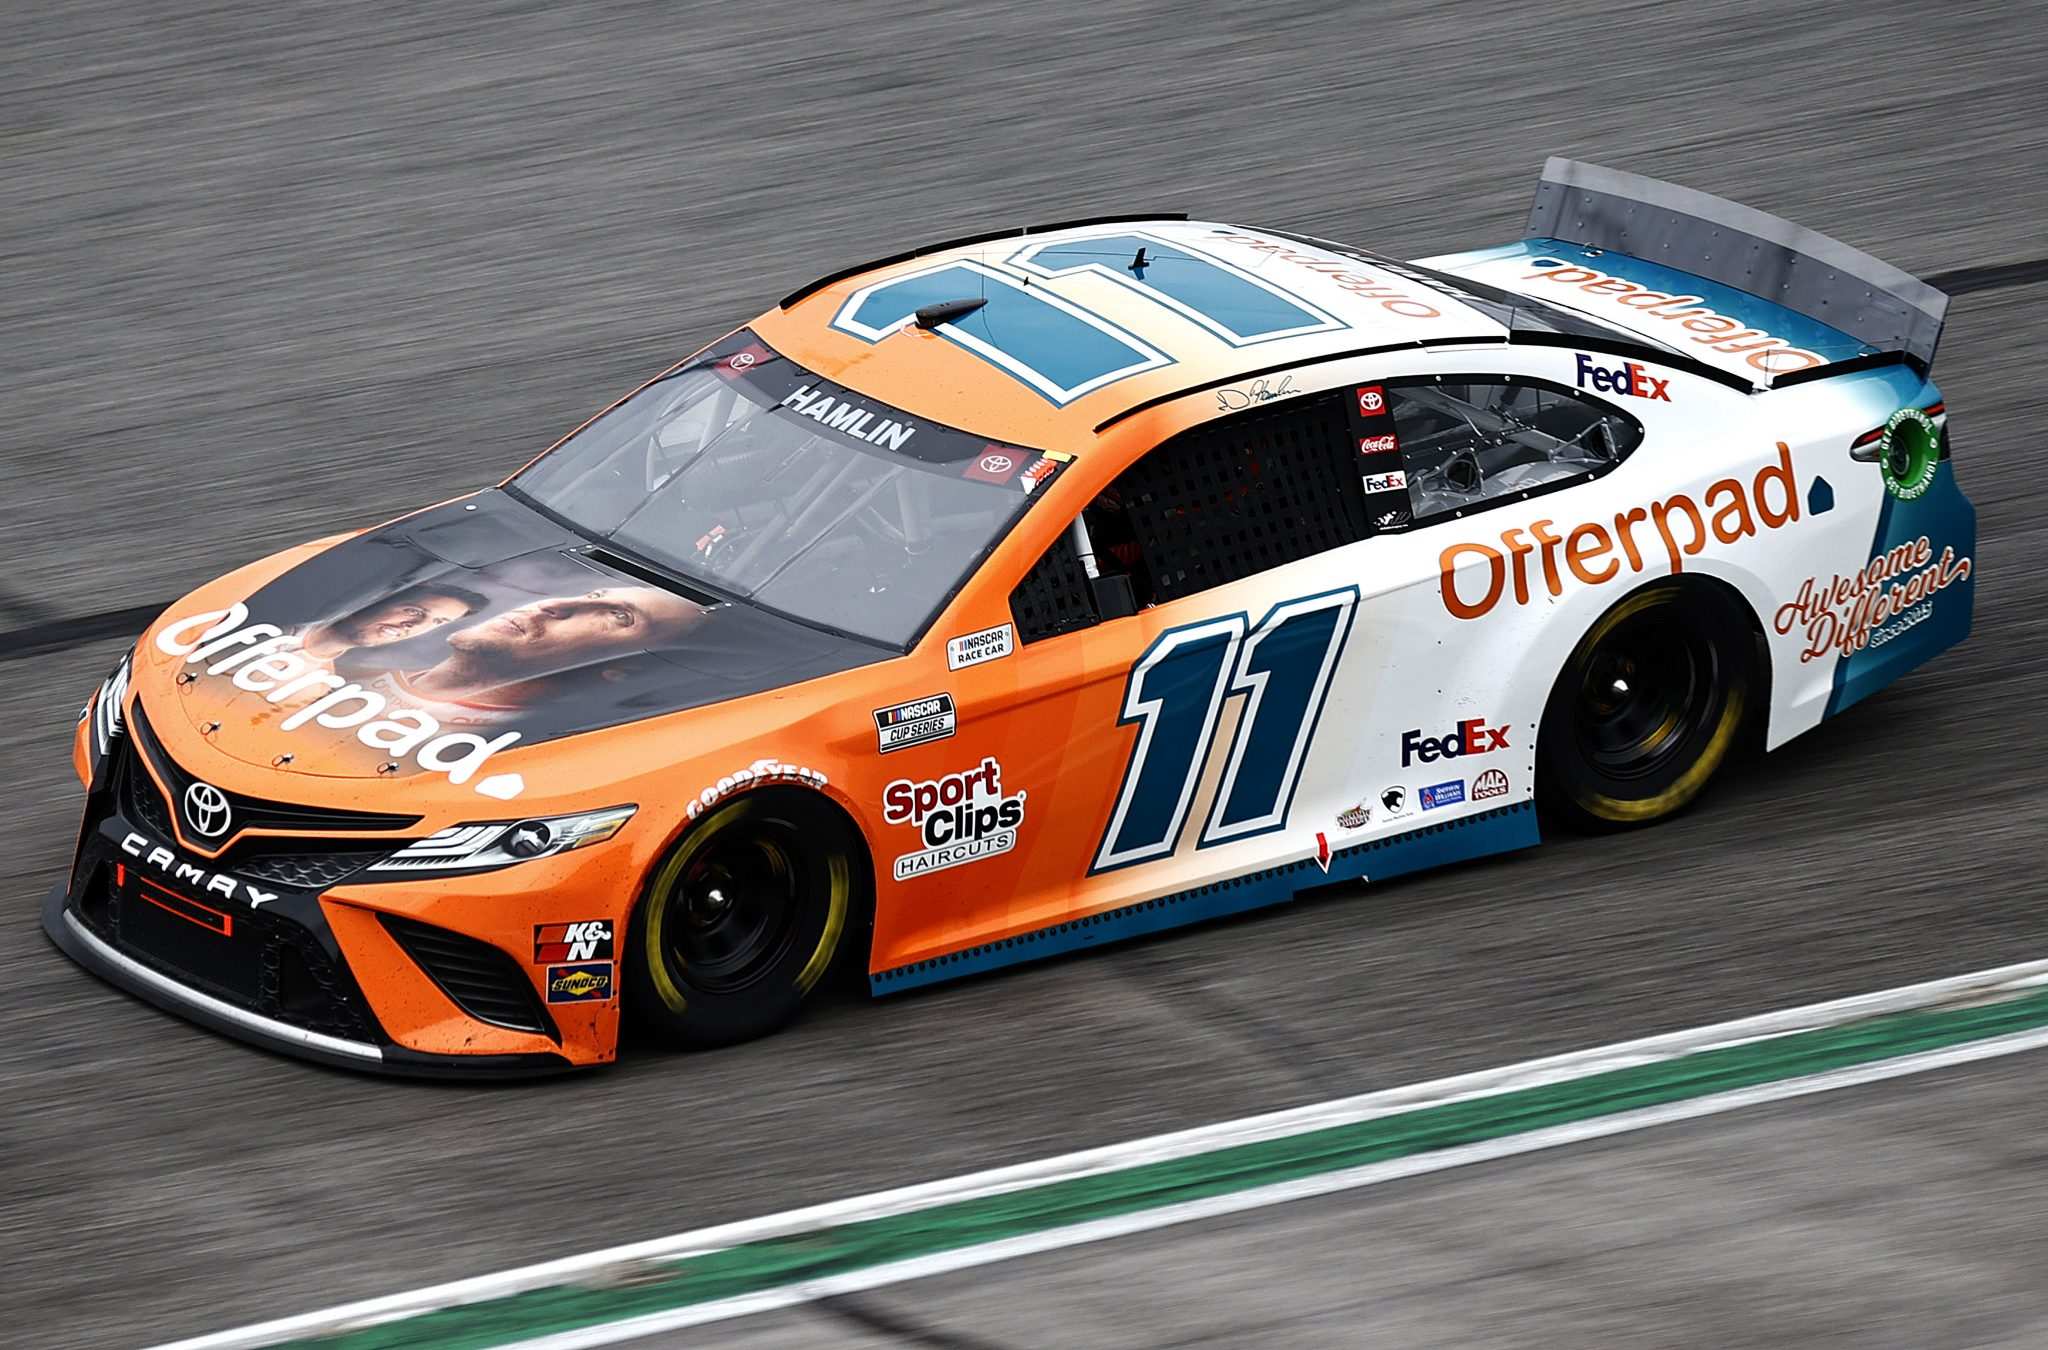 HAMPTON, GEORGIA - JULY 11: Denny Hamlin, driver of the #11 Offerpad Awesome Different Toyota, drives during the NASCAR Cup Series Quaker State 400 presented by Walmart at Atlanta Motor Speedway on July 11, 2021 in Hampton, Georgia. (Photo by Jared C. Tilton/Getty Images)   Getty Images